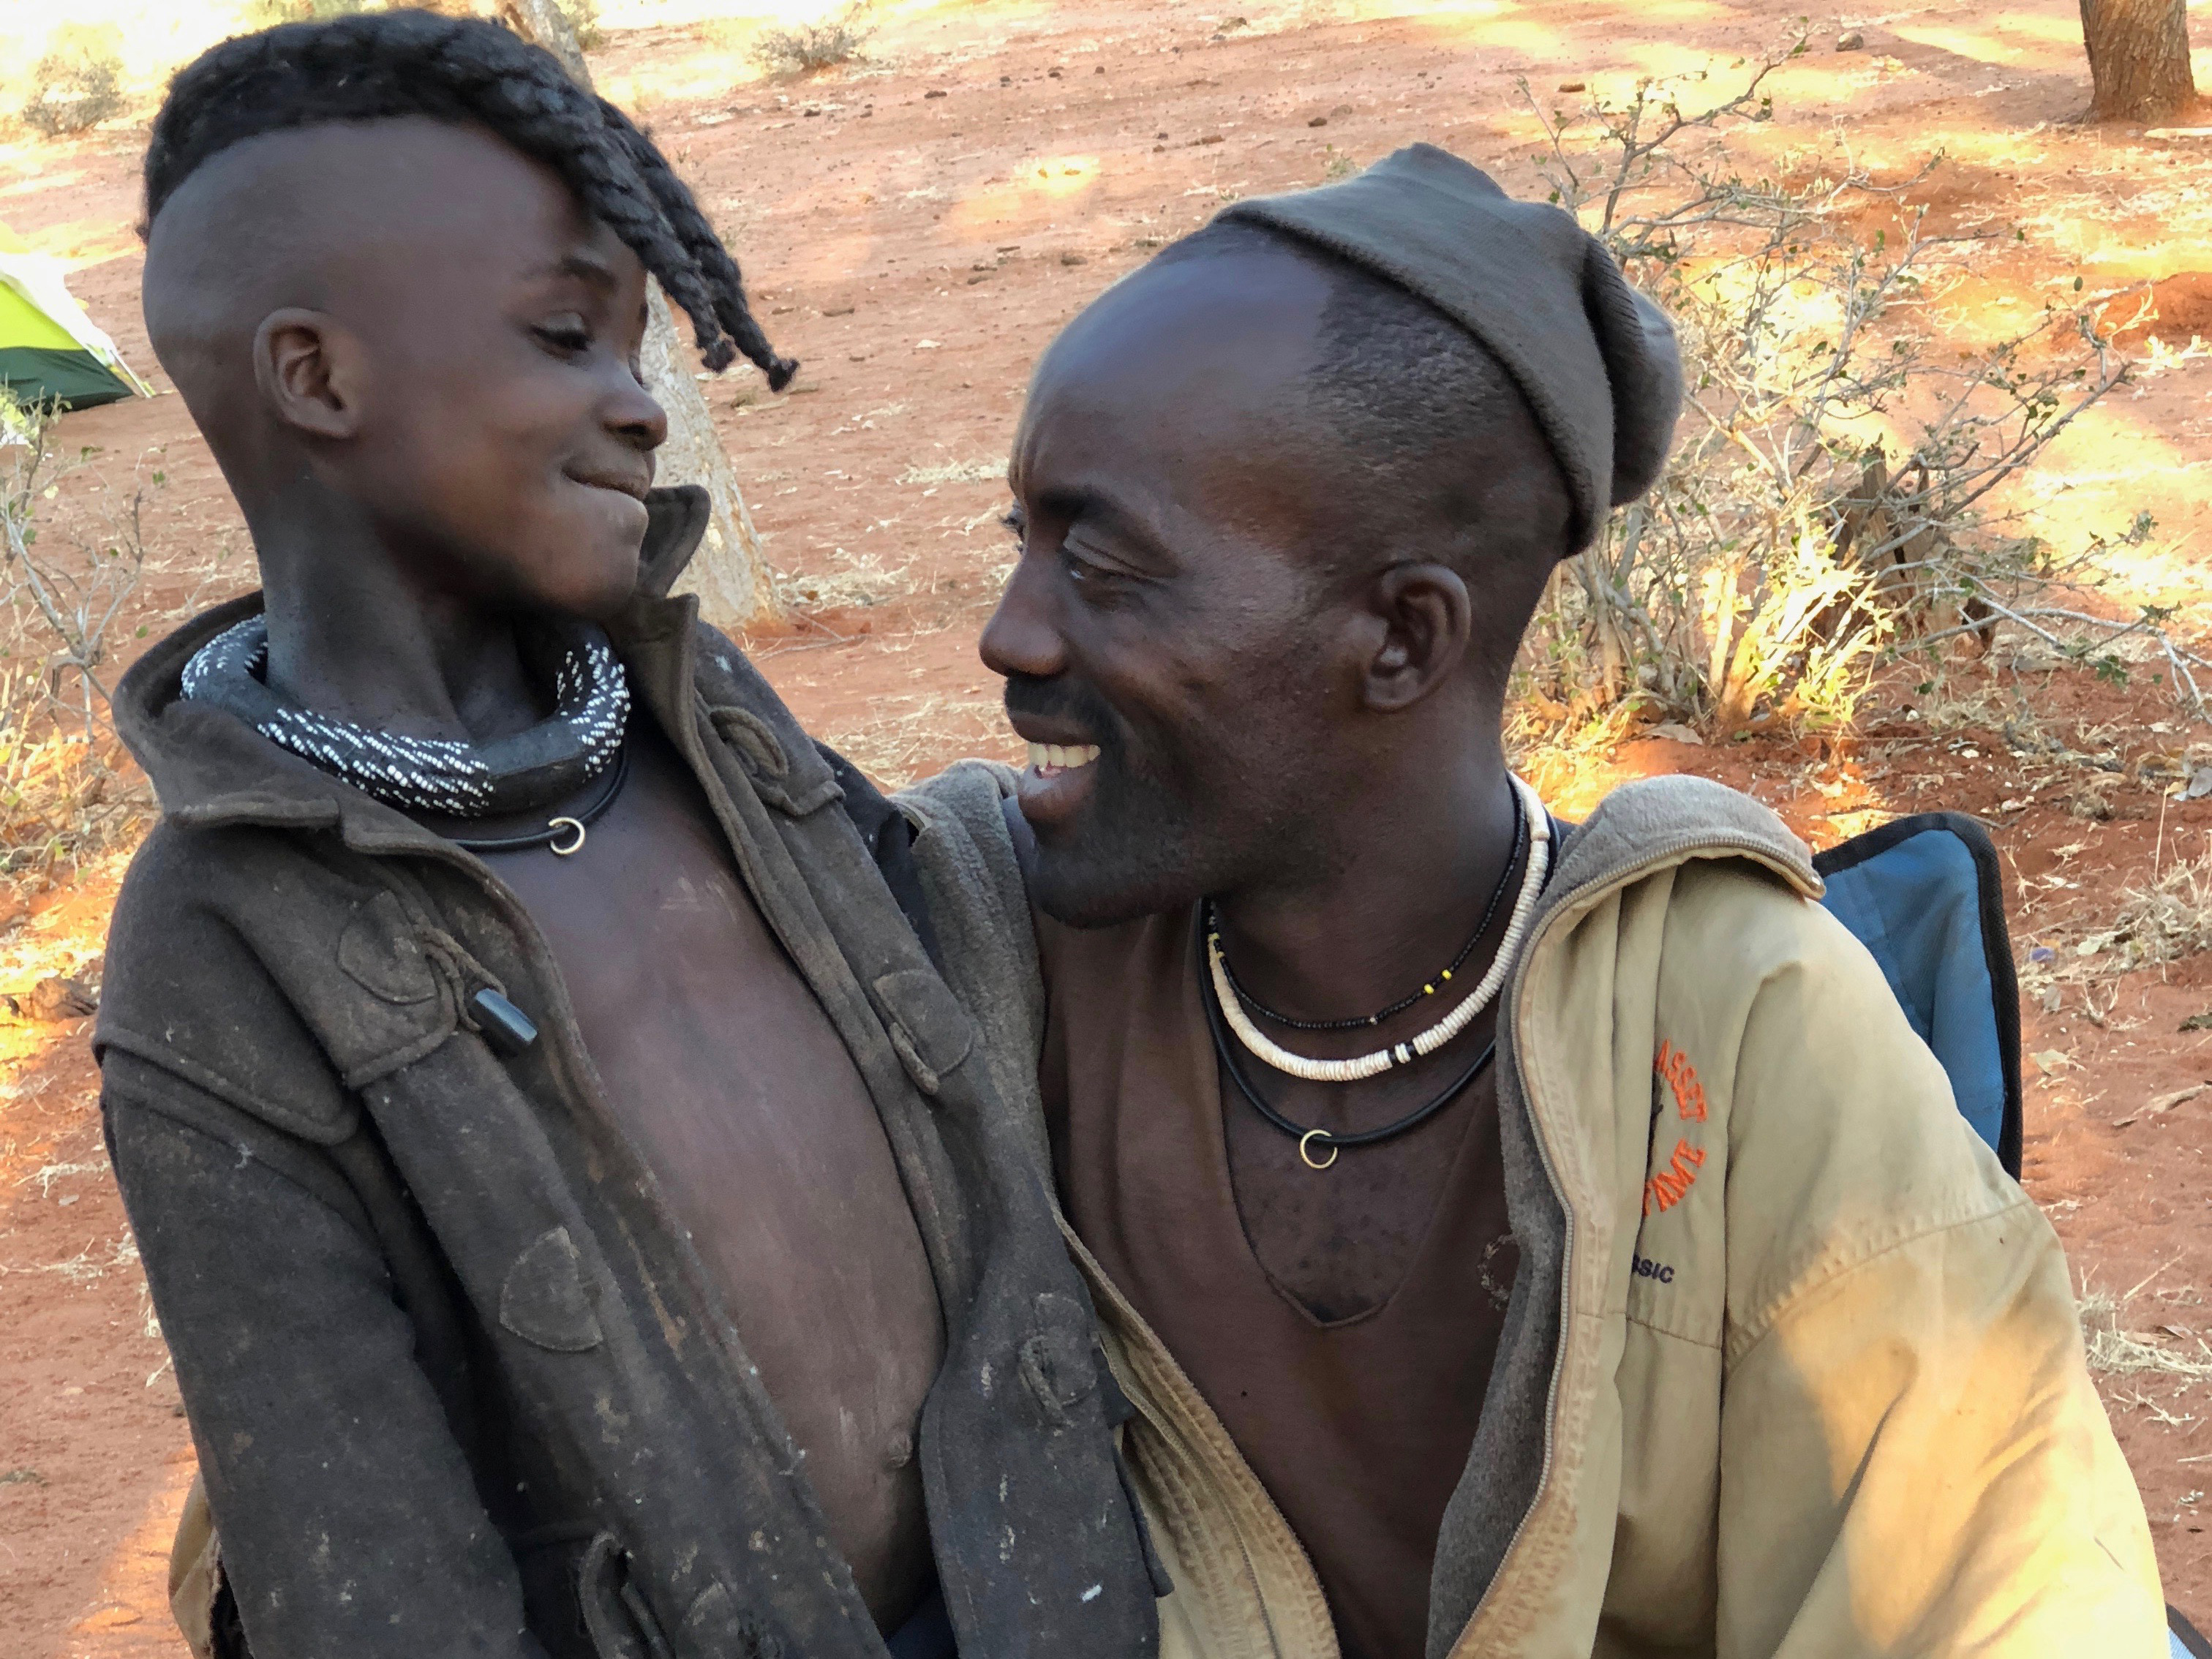 A photo of a Himba father and son.